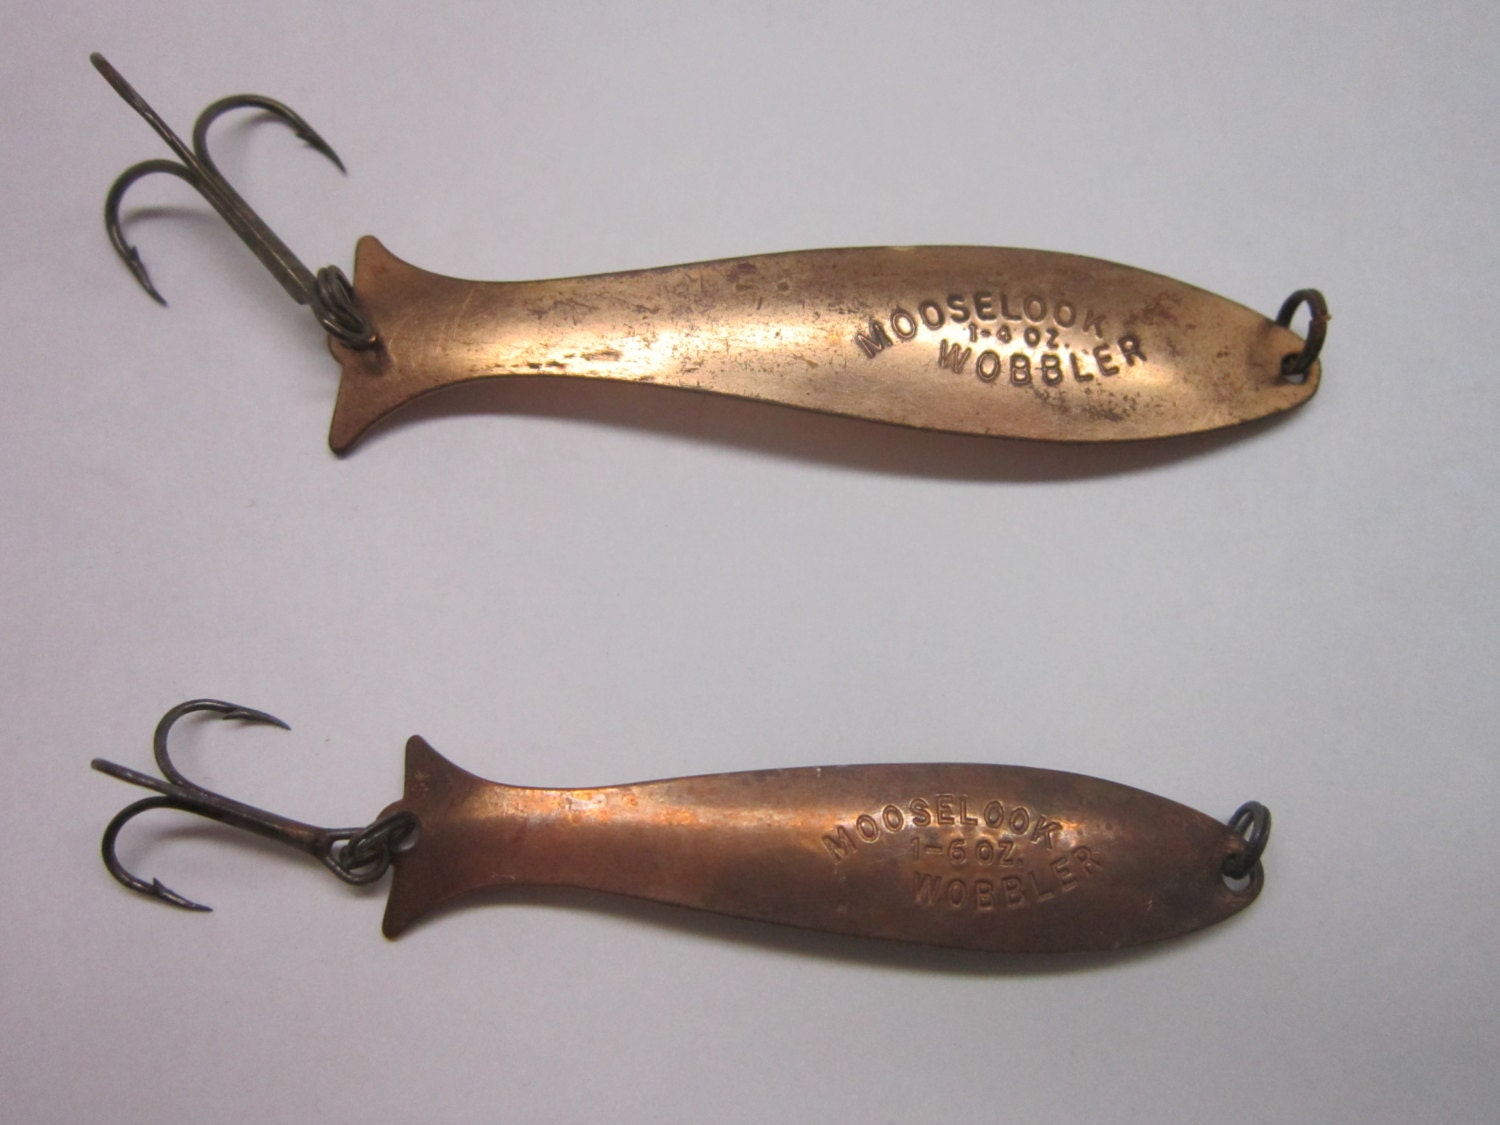 Vintage Copper 2 Mooselook Wobblers Fishing Lures by ...